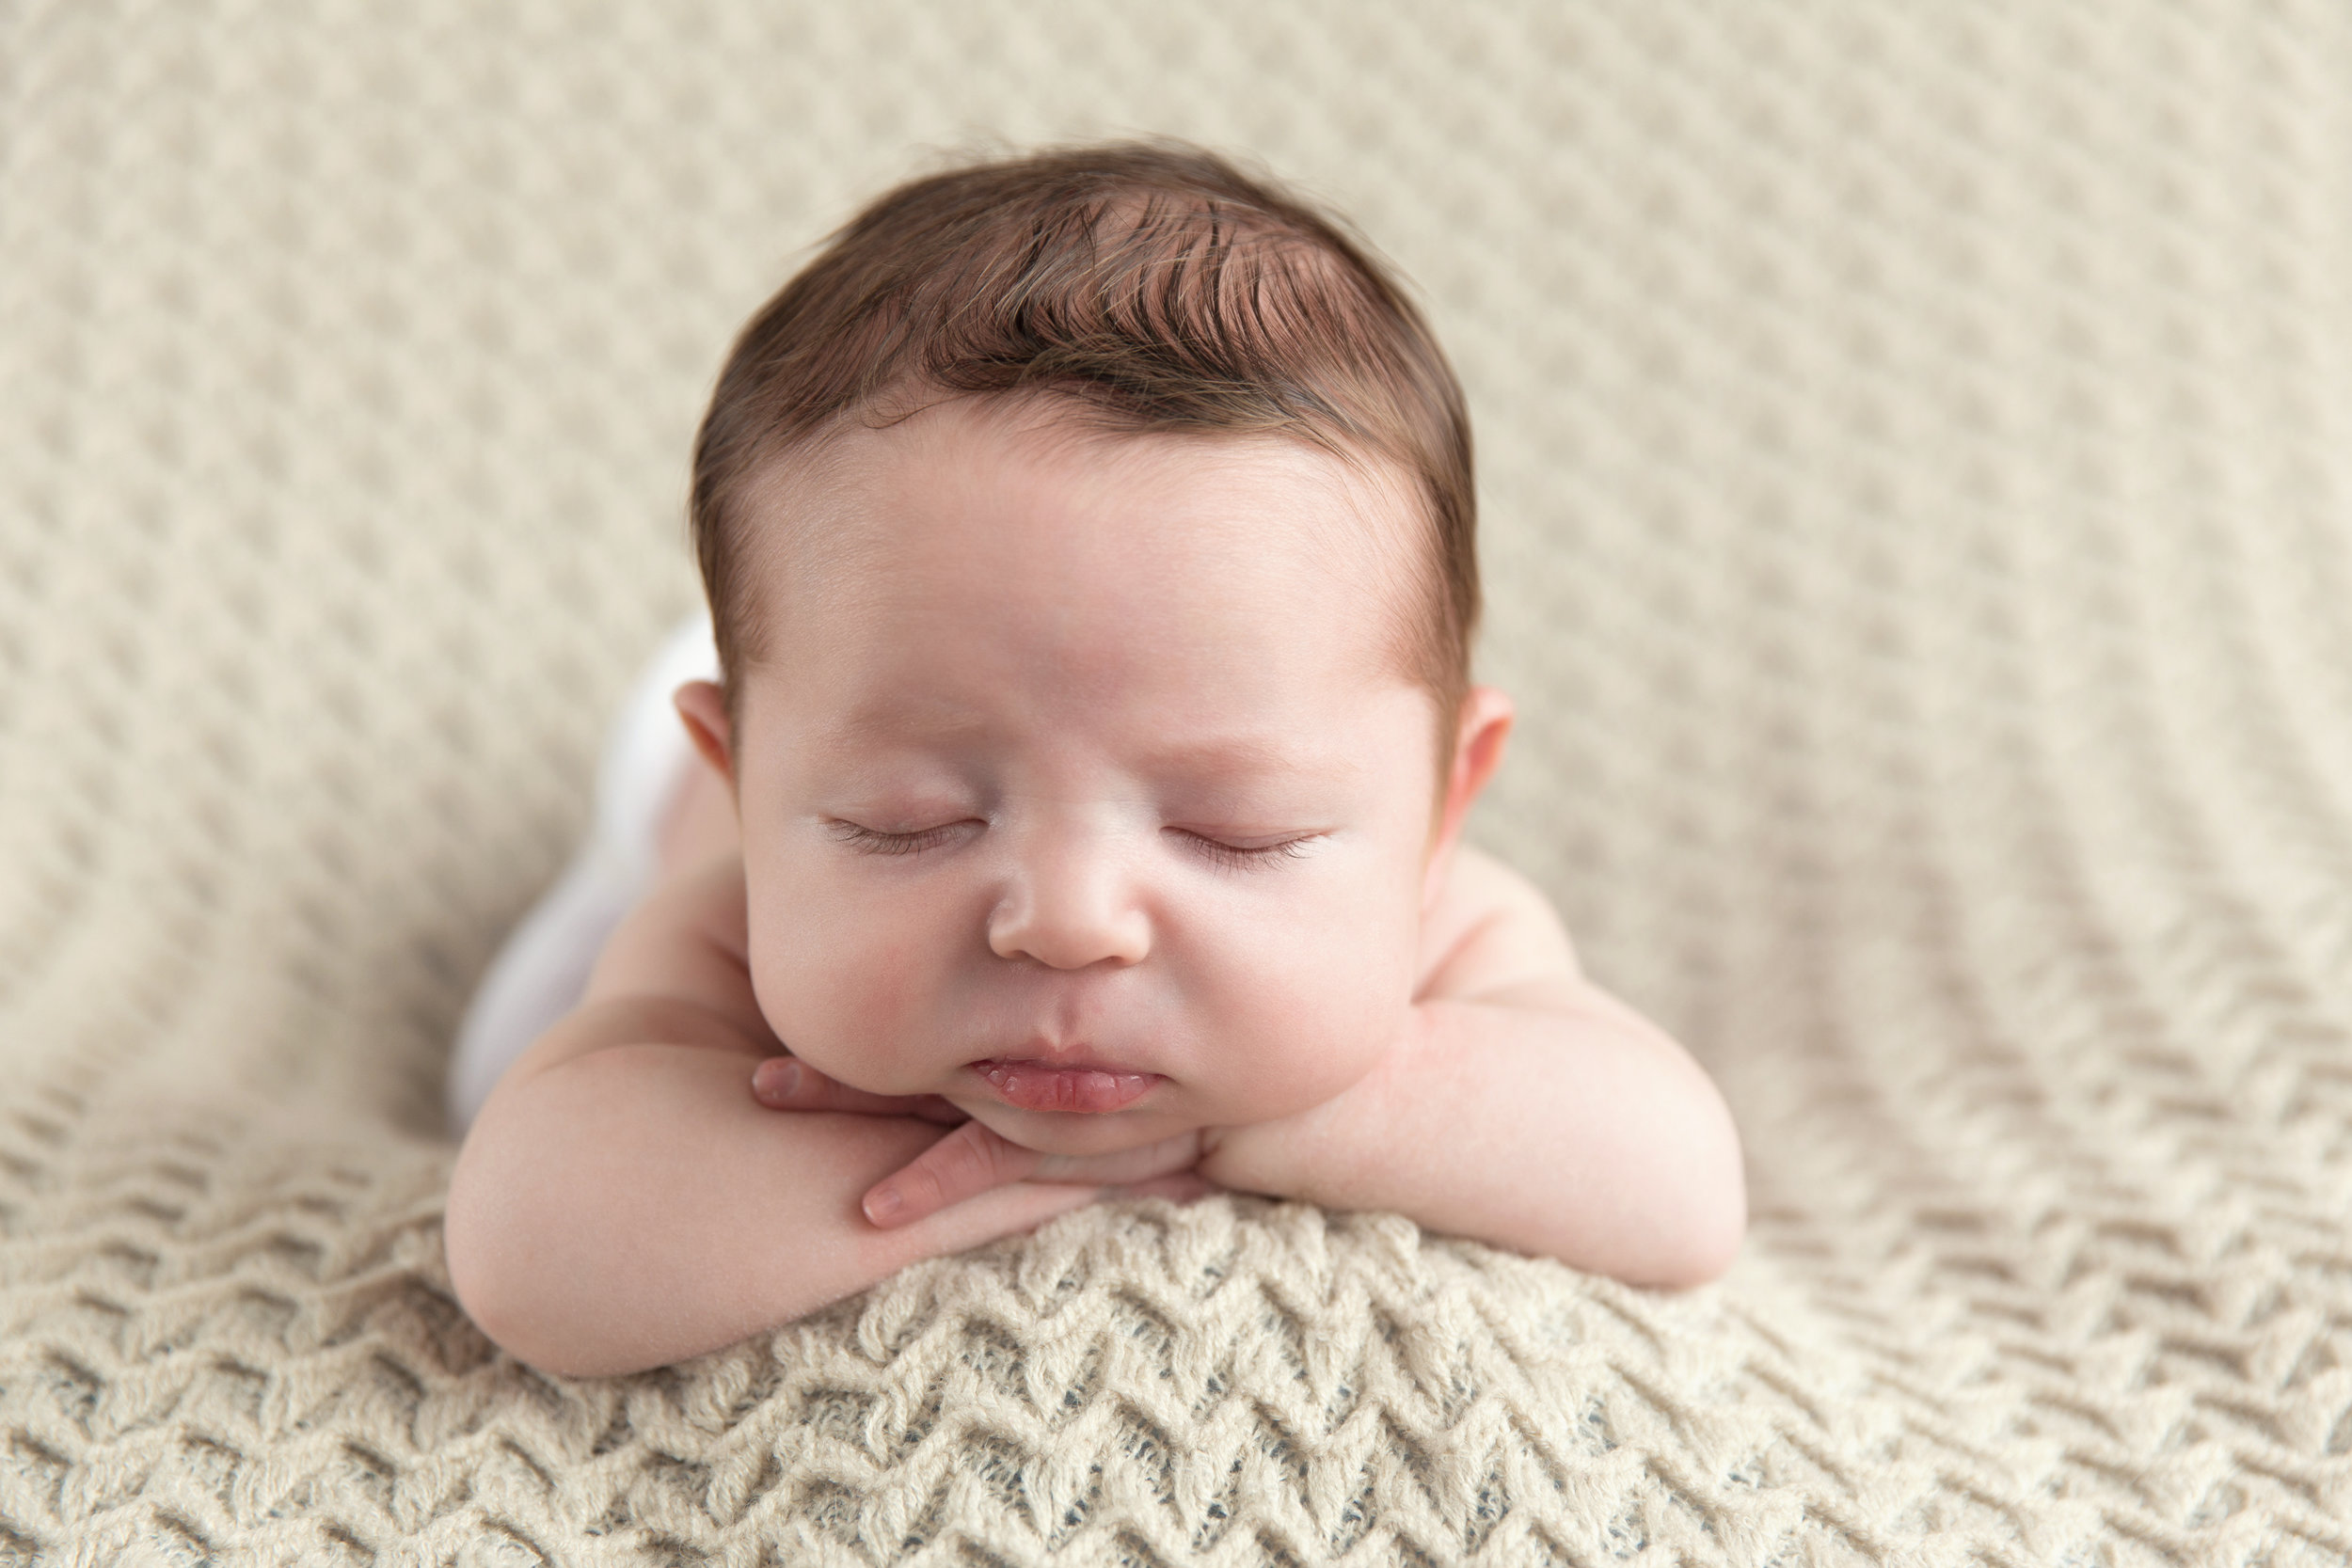 Newborn baby boy on a beanbag. Calgary Newborn Photographer. Milashka Photography